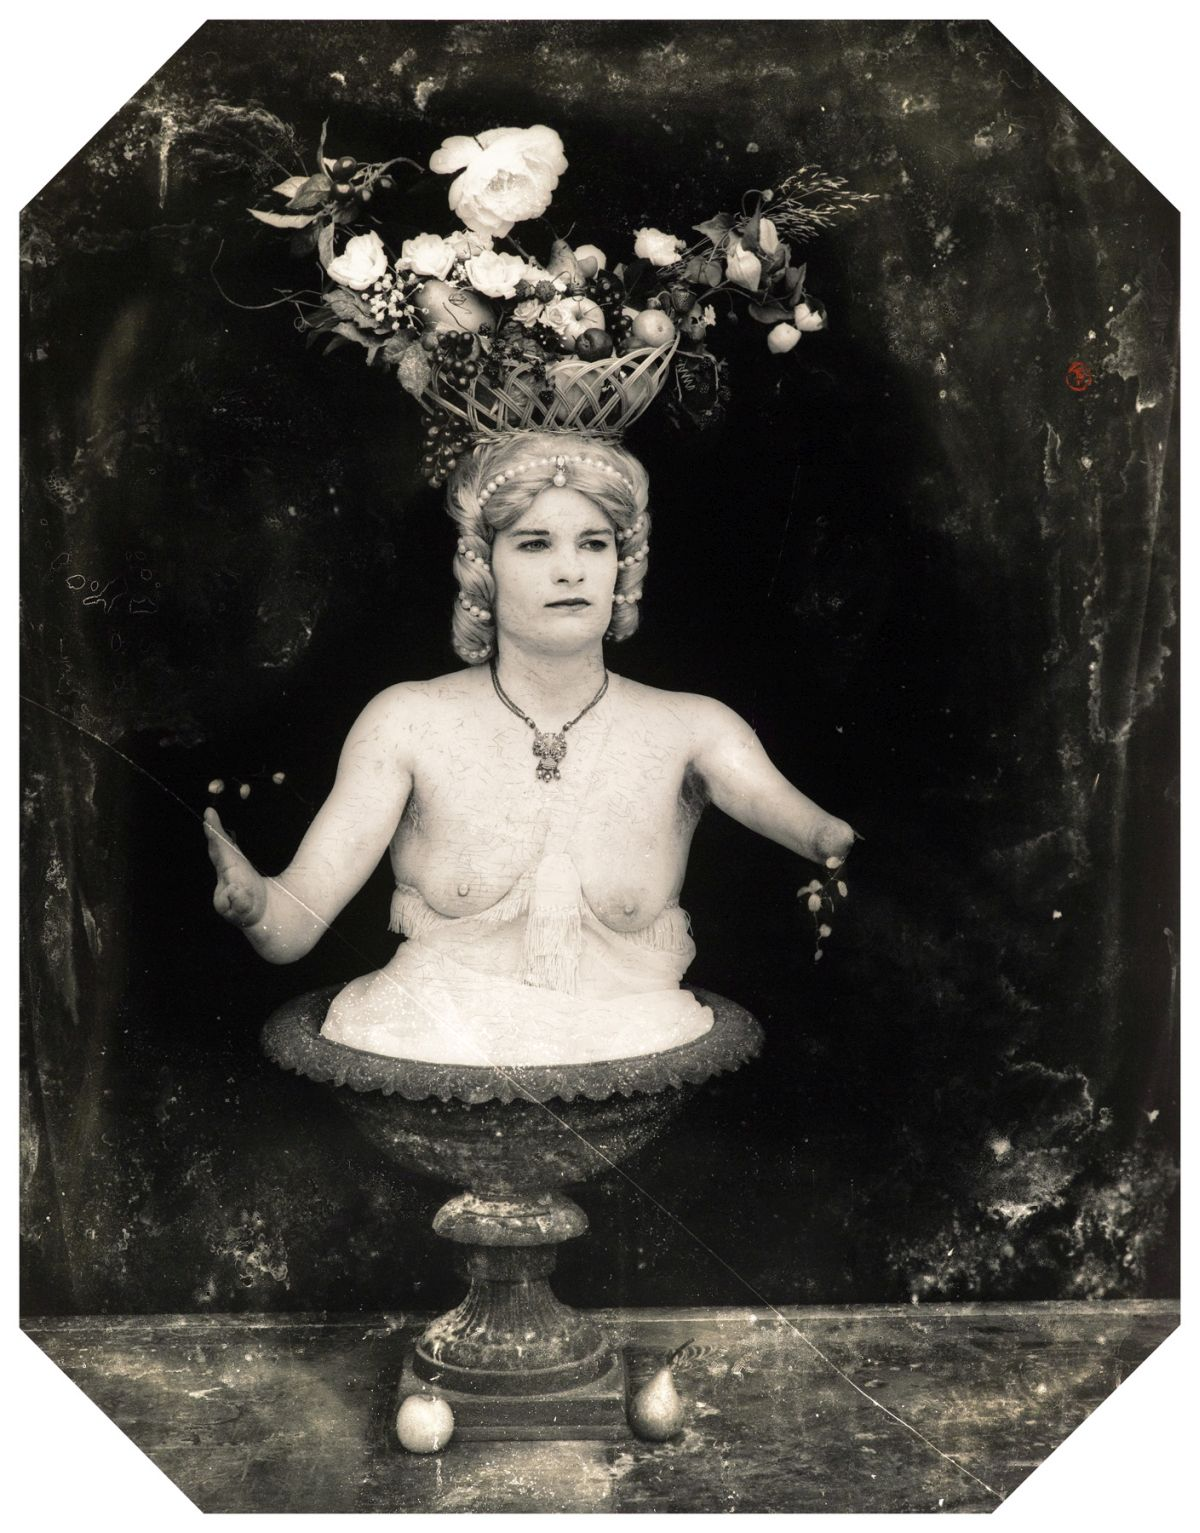 "Joel-Peter Witkin, Abundance, Prague, 1997  From the Photographic Works series  20 x 16"", 40 x 30"" gelatin silver print Edition of 10 + 3 AP's, 12 + 3 AP's"